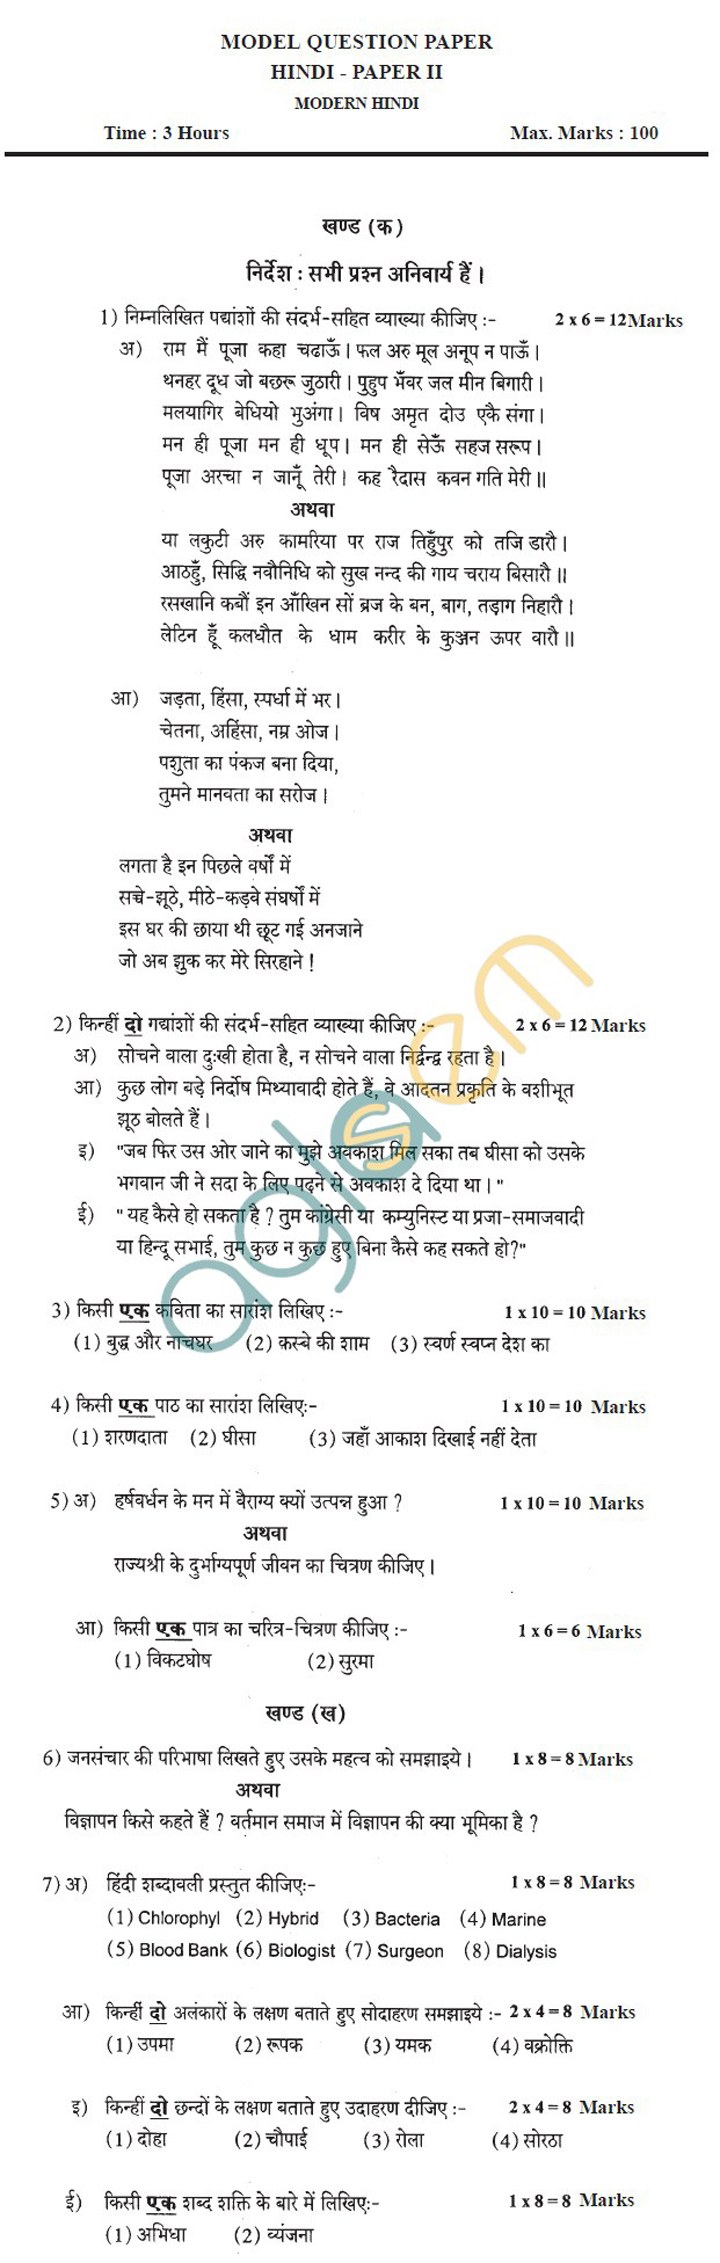 AP Board Intermediate II Year Hindi Model Question Paper